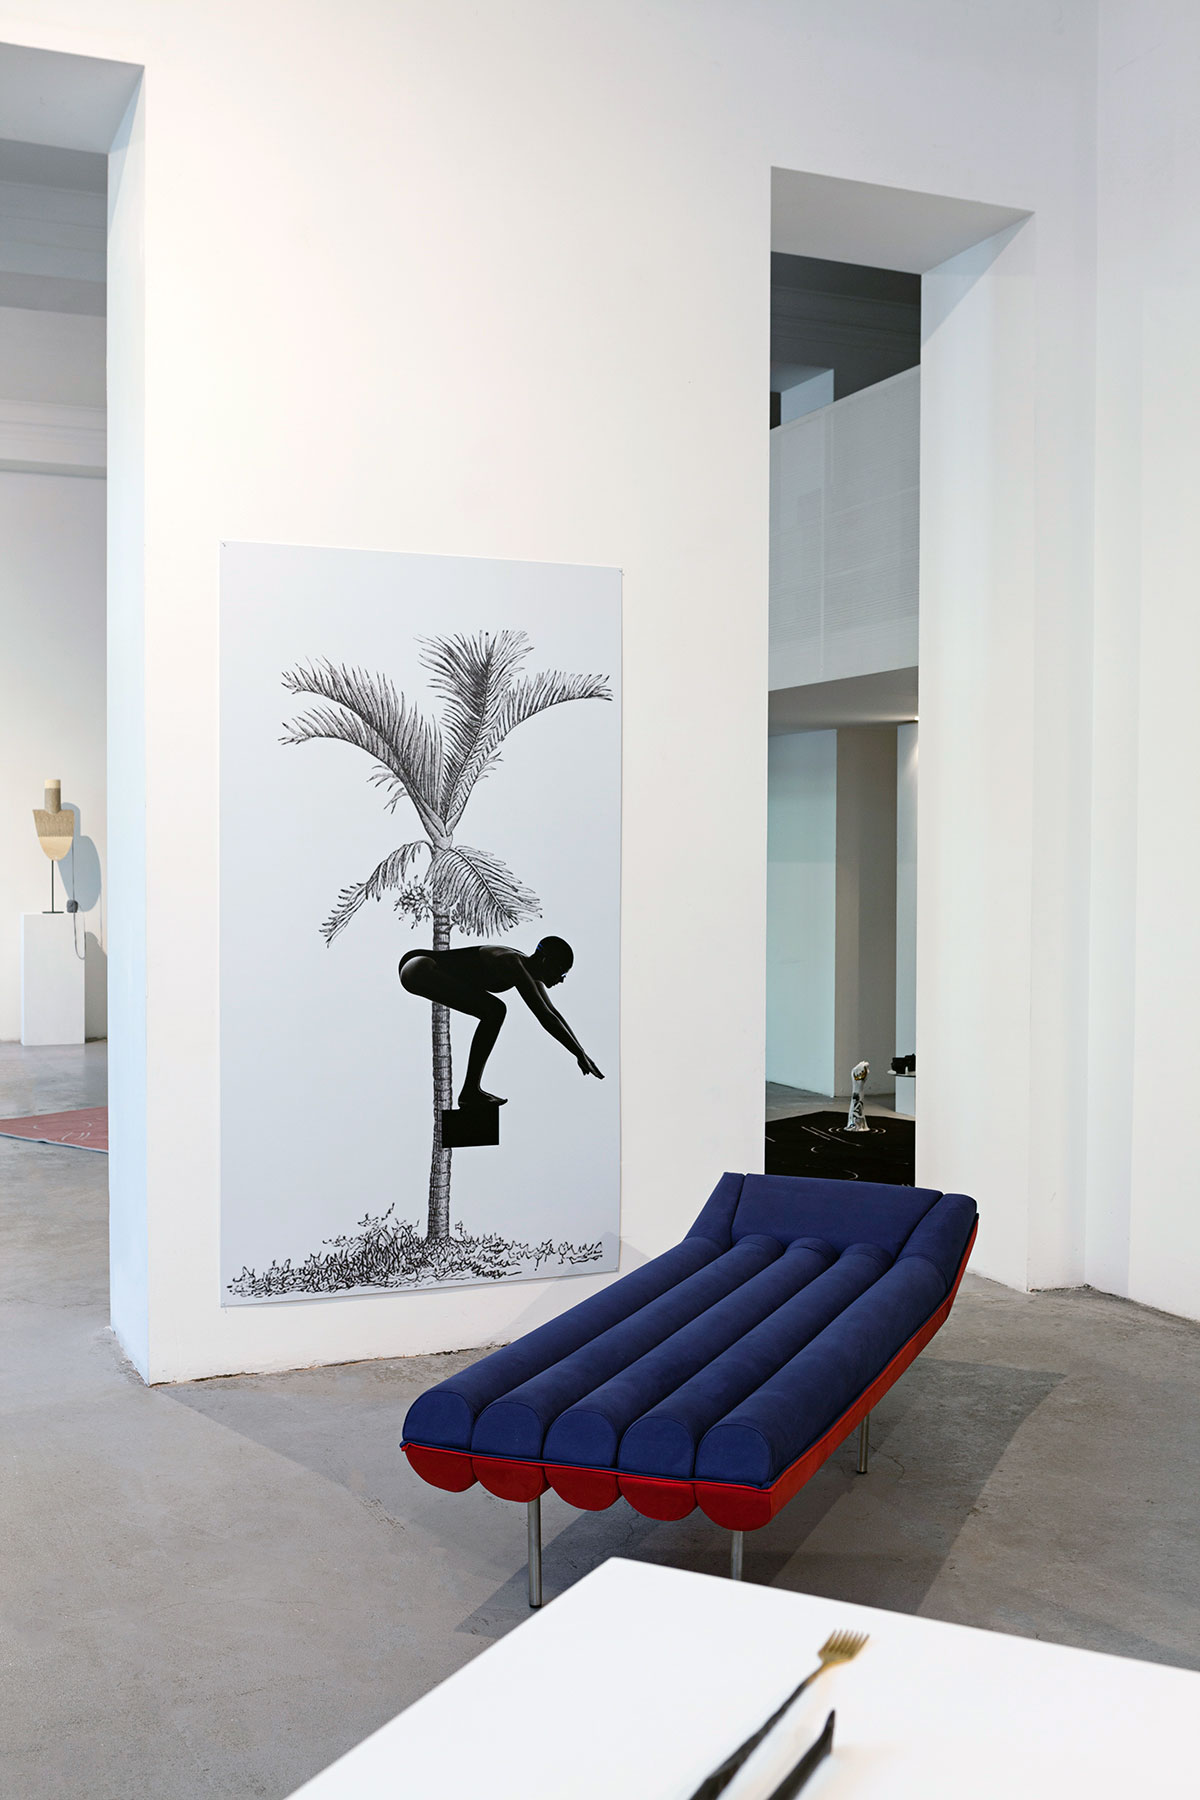 """Installation view of the""""IRONICALLY ICONIC: UNEXPECTED DESIGN FOR EXPECTED USES"""" exhibition organized by Valorizzazioni Culturali 